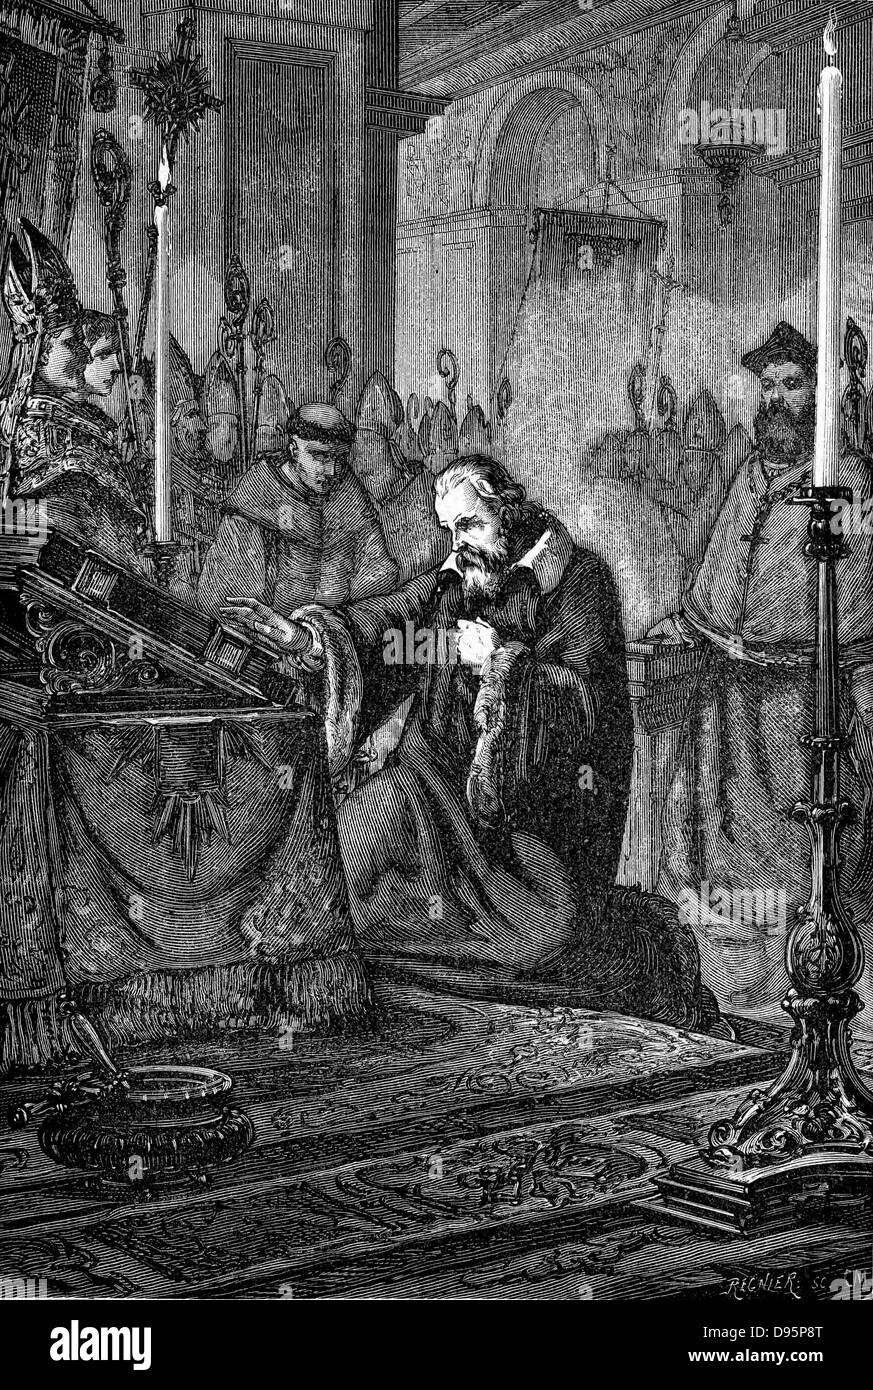 Galilei Galileo (1564-1642) Italian astronomer and mathematician. Artist's reconstruction of Galileo recanting. - Stock Image